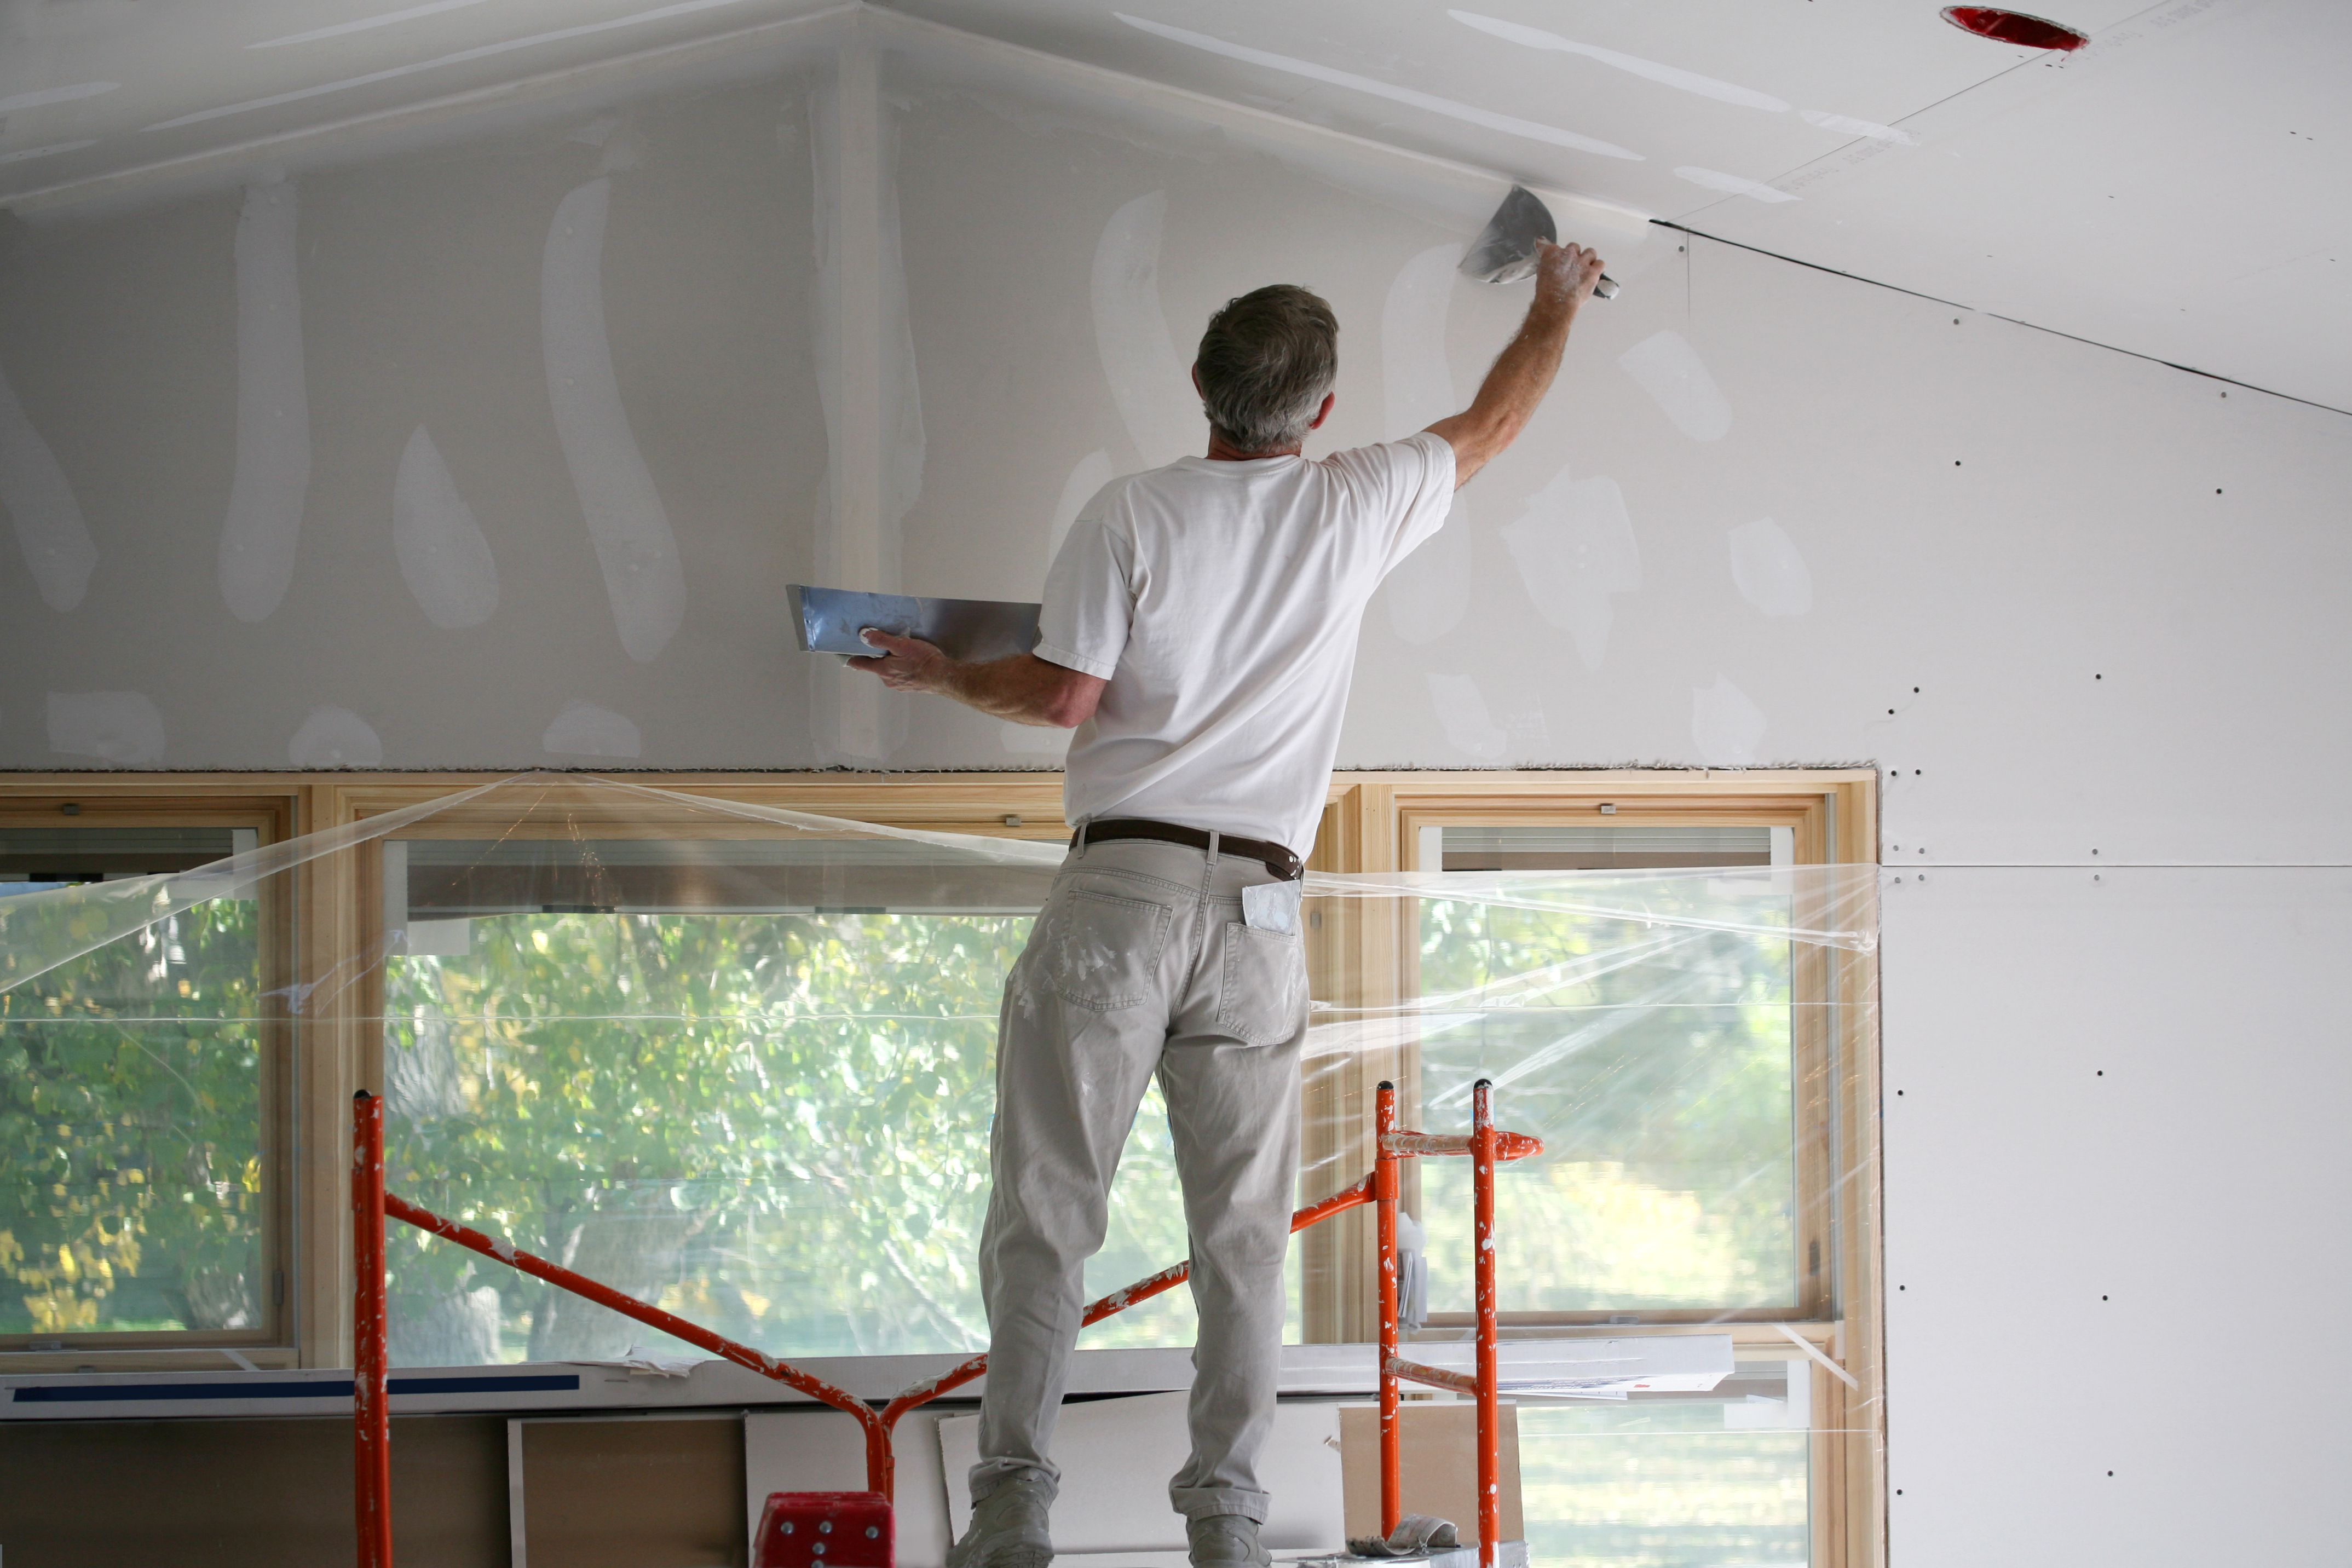 exterior joint compound. can low dust drywall joint compound save your lungs? exterior